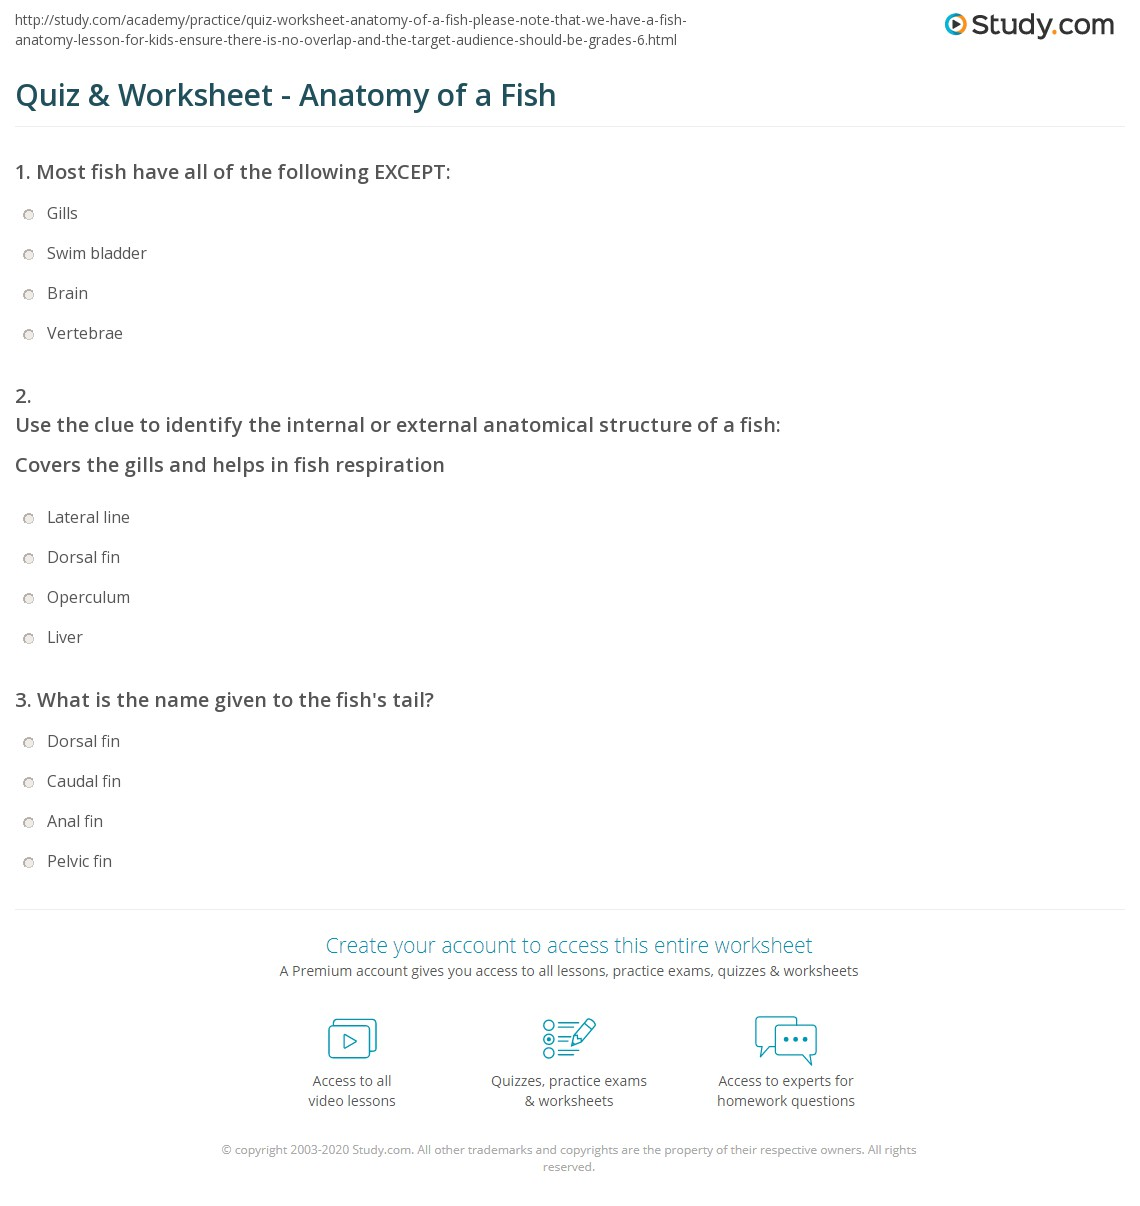 Quiz & Worksheet - Anatomy of a Fish | Study.com